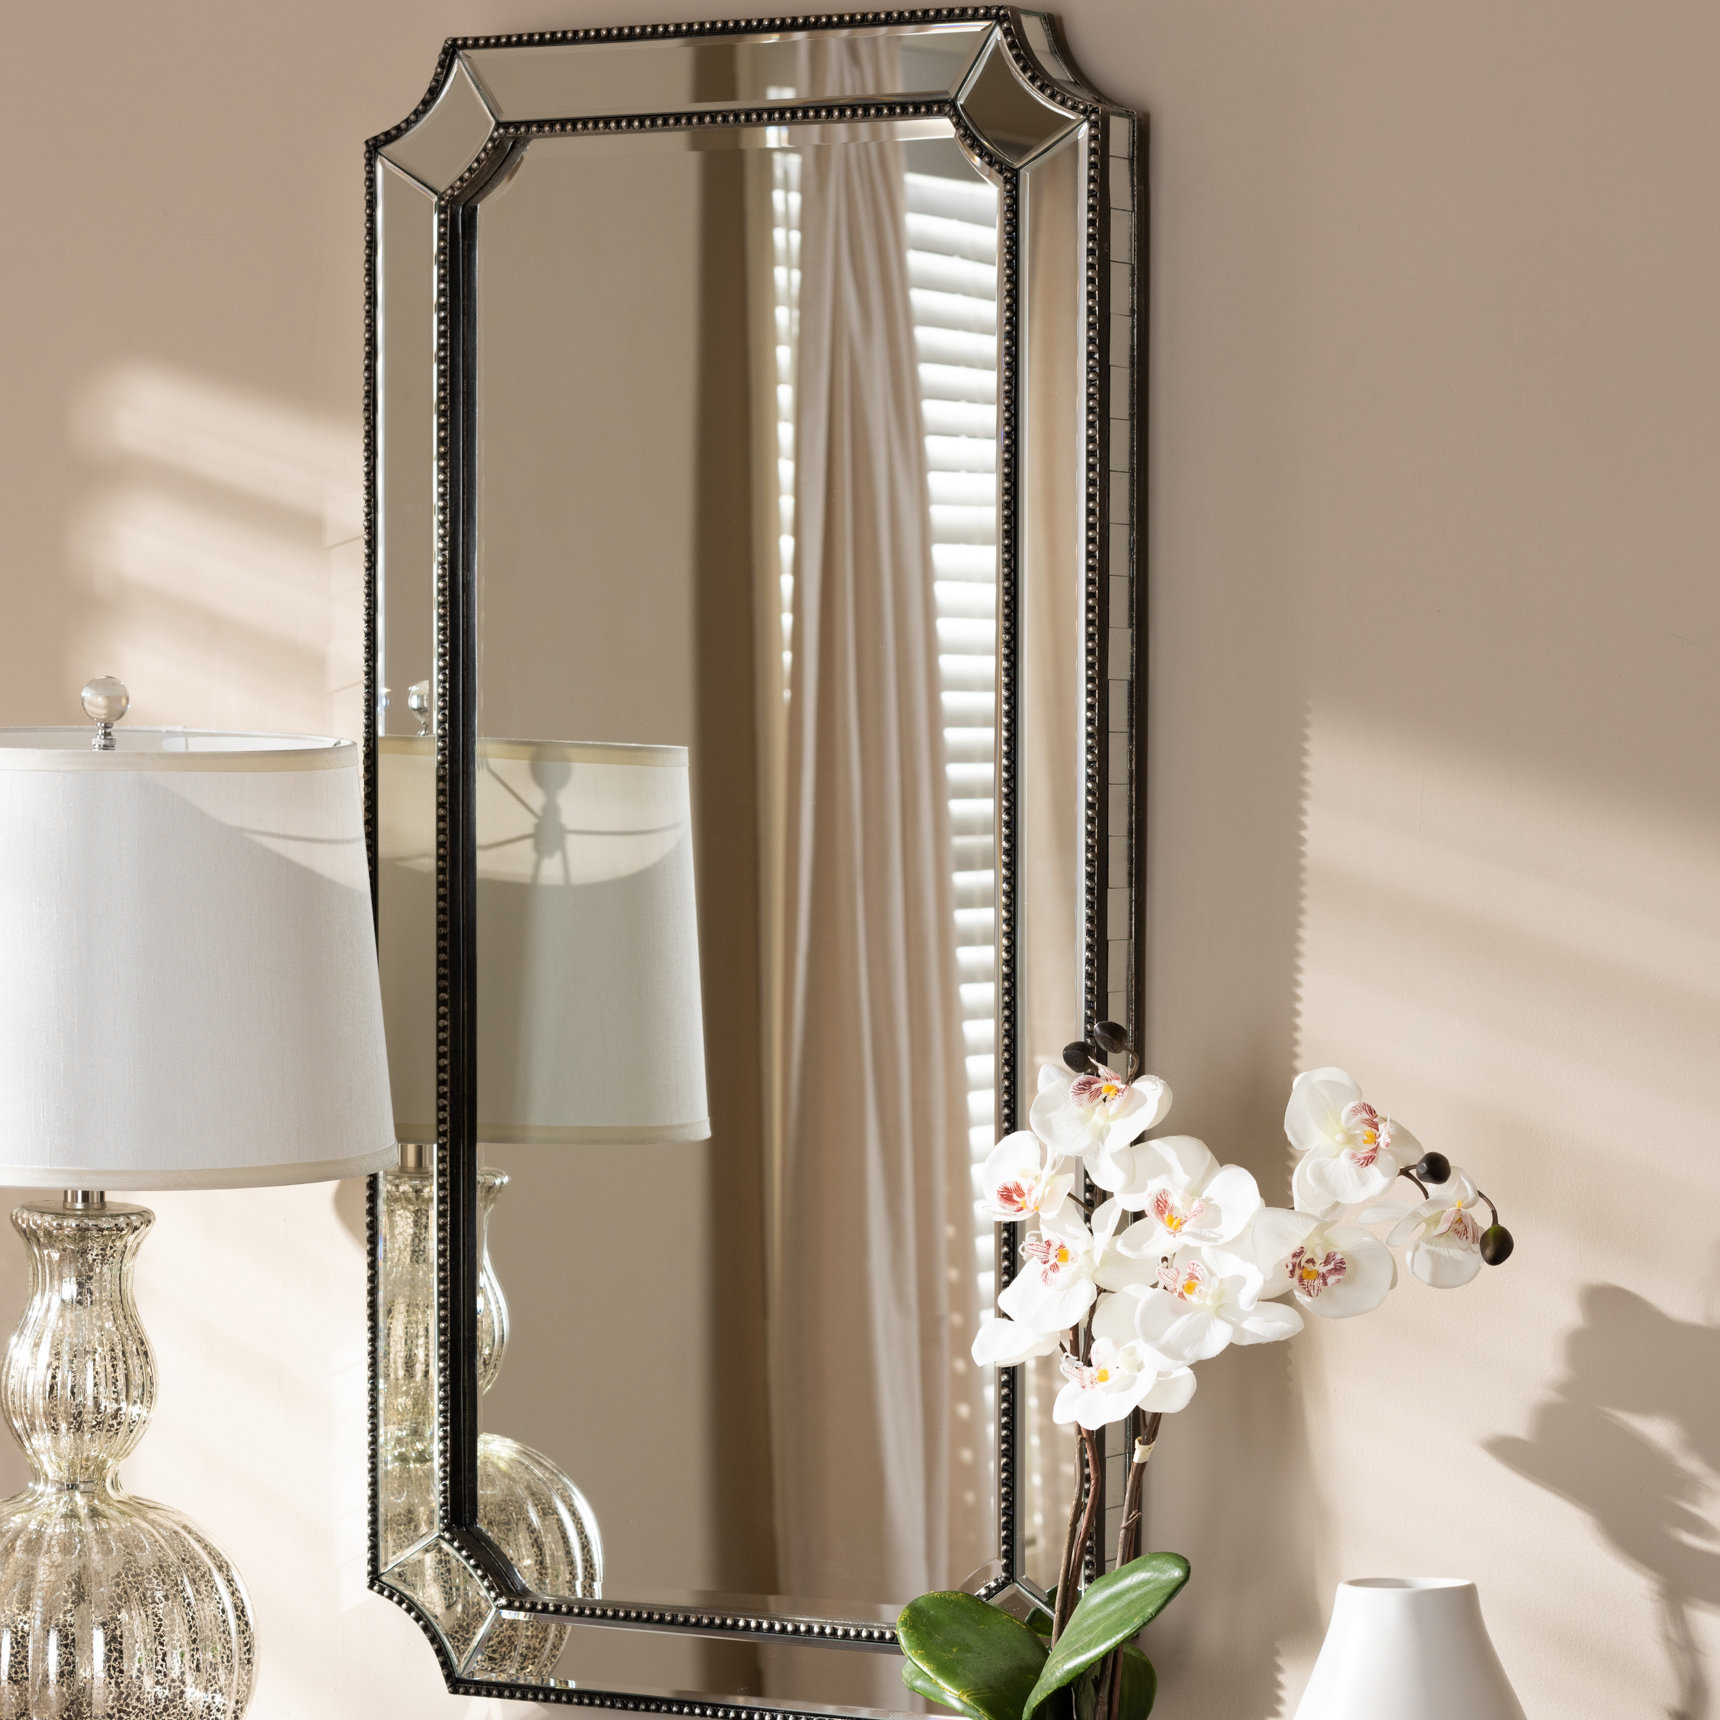 Jerrell Wall Mirror Regarding Well Known Polen Traditional Wall Mirrors (Gallery 10 of 20)